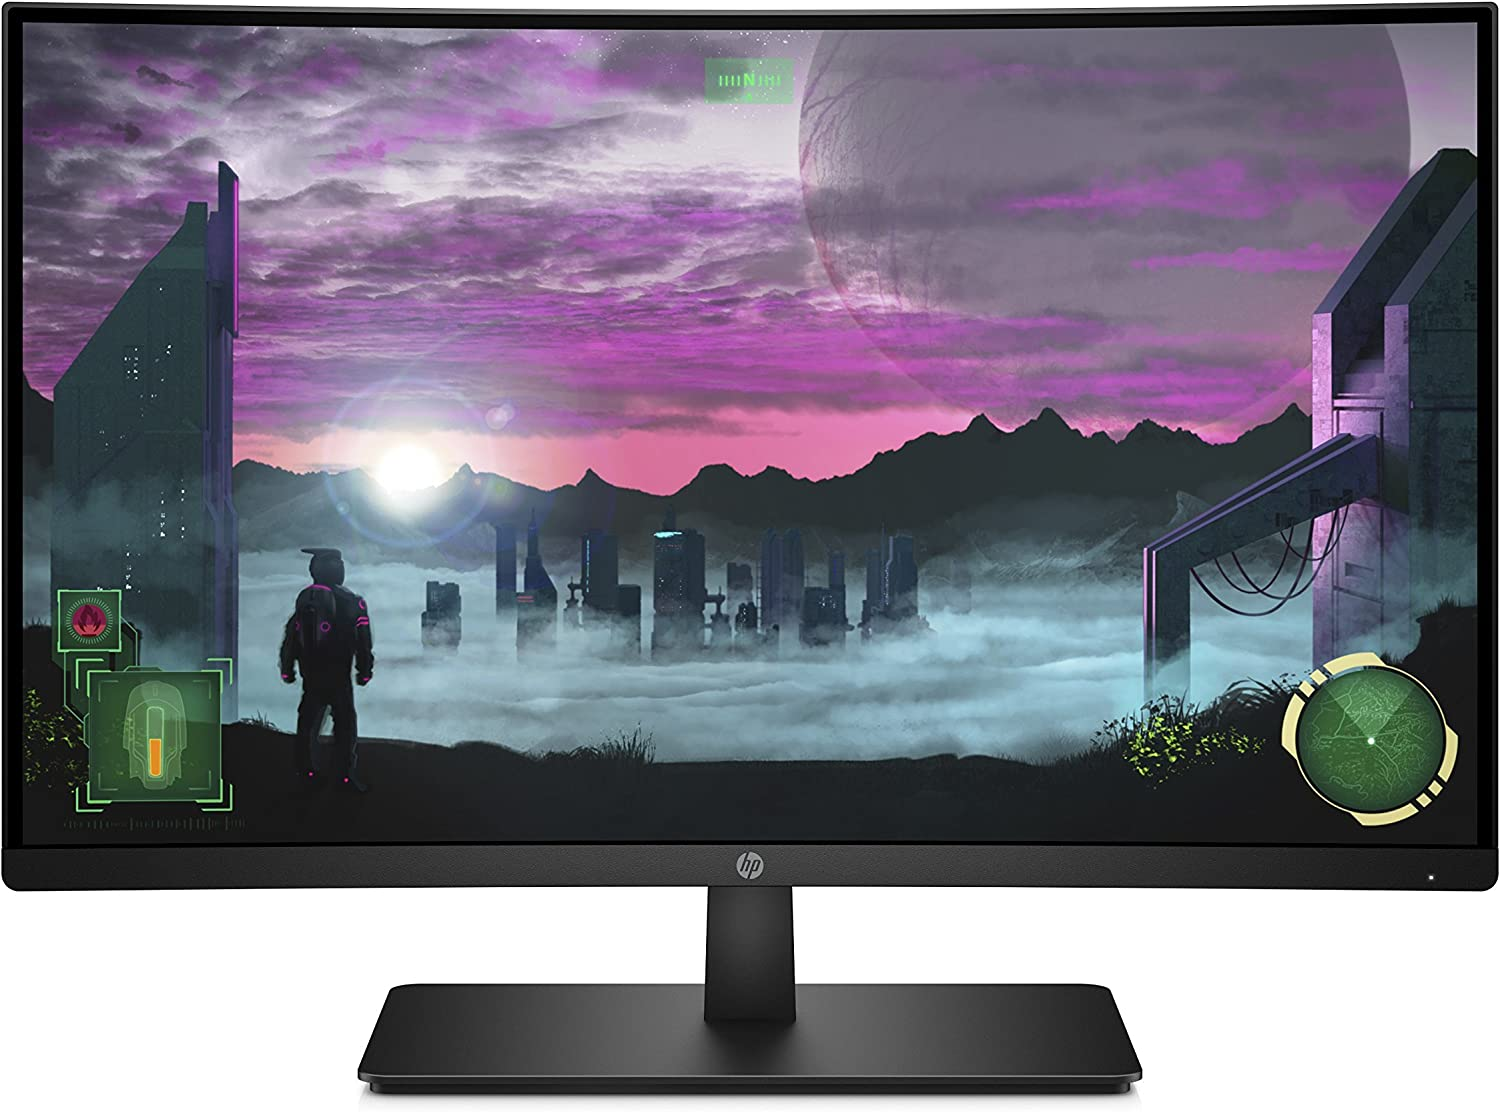 HP 27-inch FHD Curved Gaming Monitor with AMD Freesync Technology (27x, Black) (Renewed)